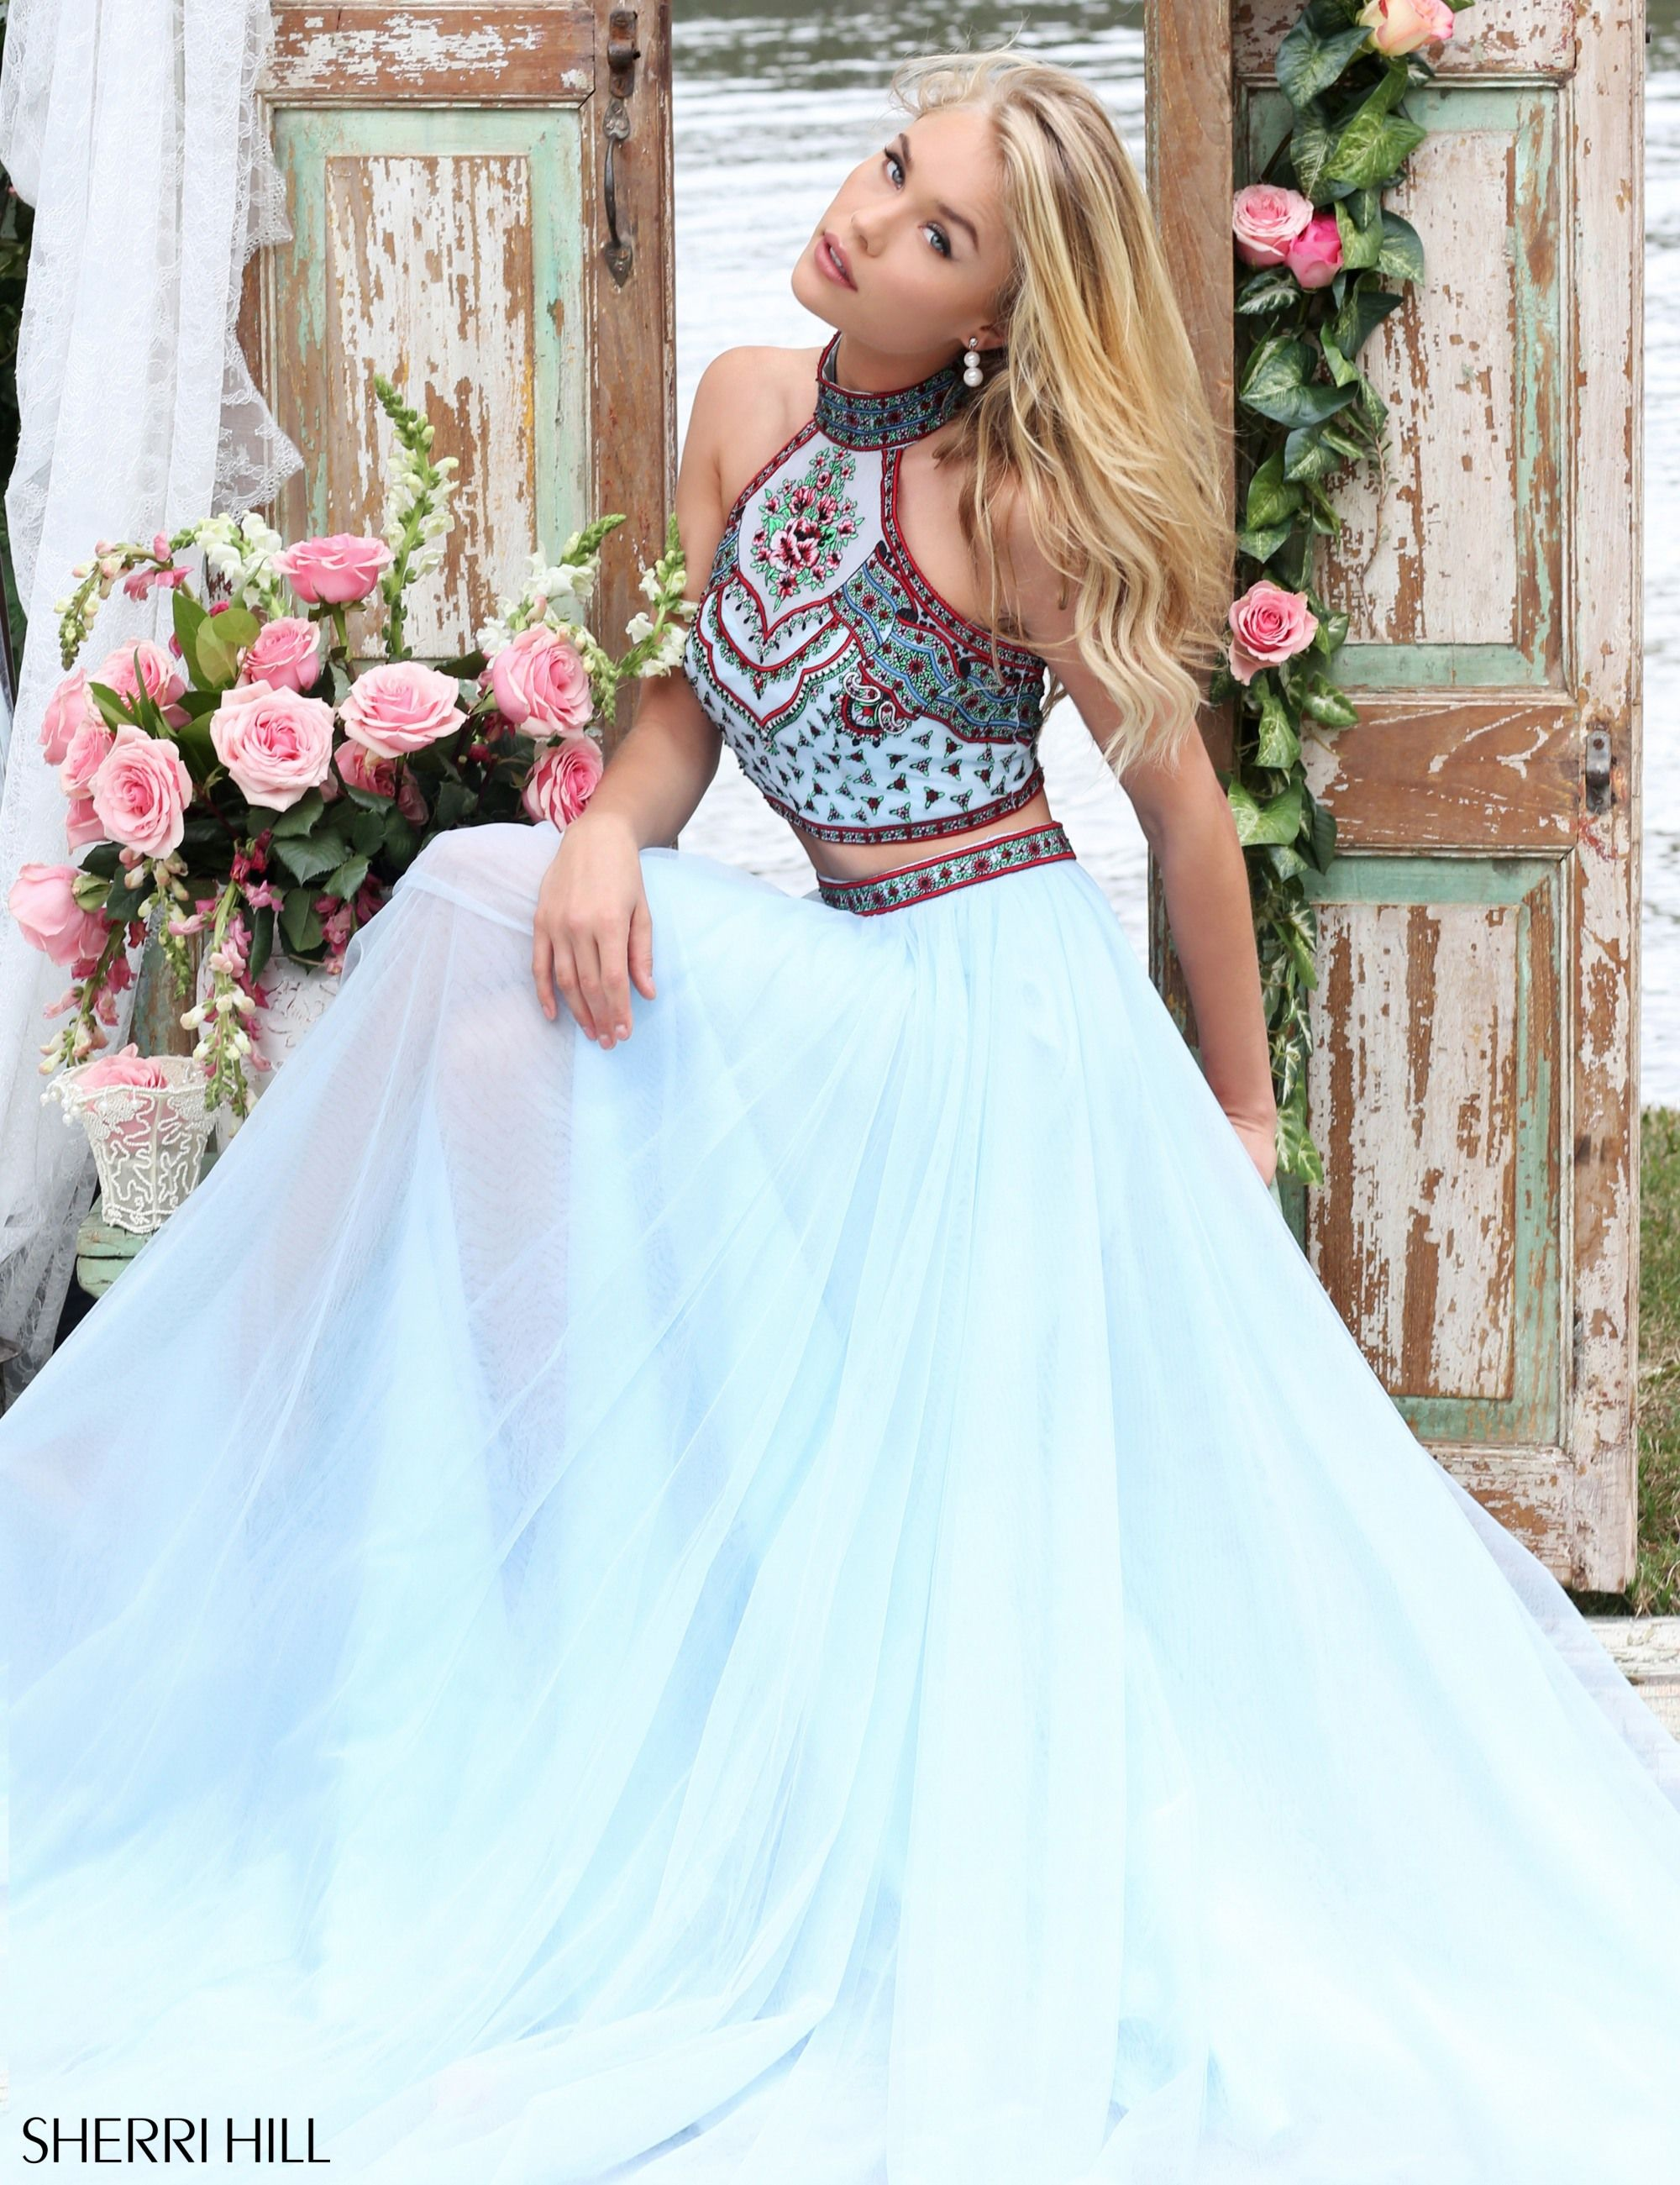 Utah Prom Dresses Ypsilon Dresses 2-piece Sherri Hill Blue Dress ...